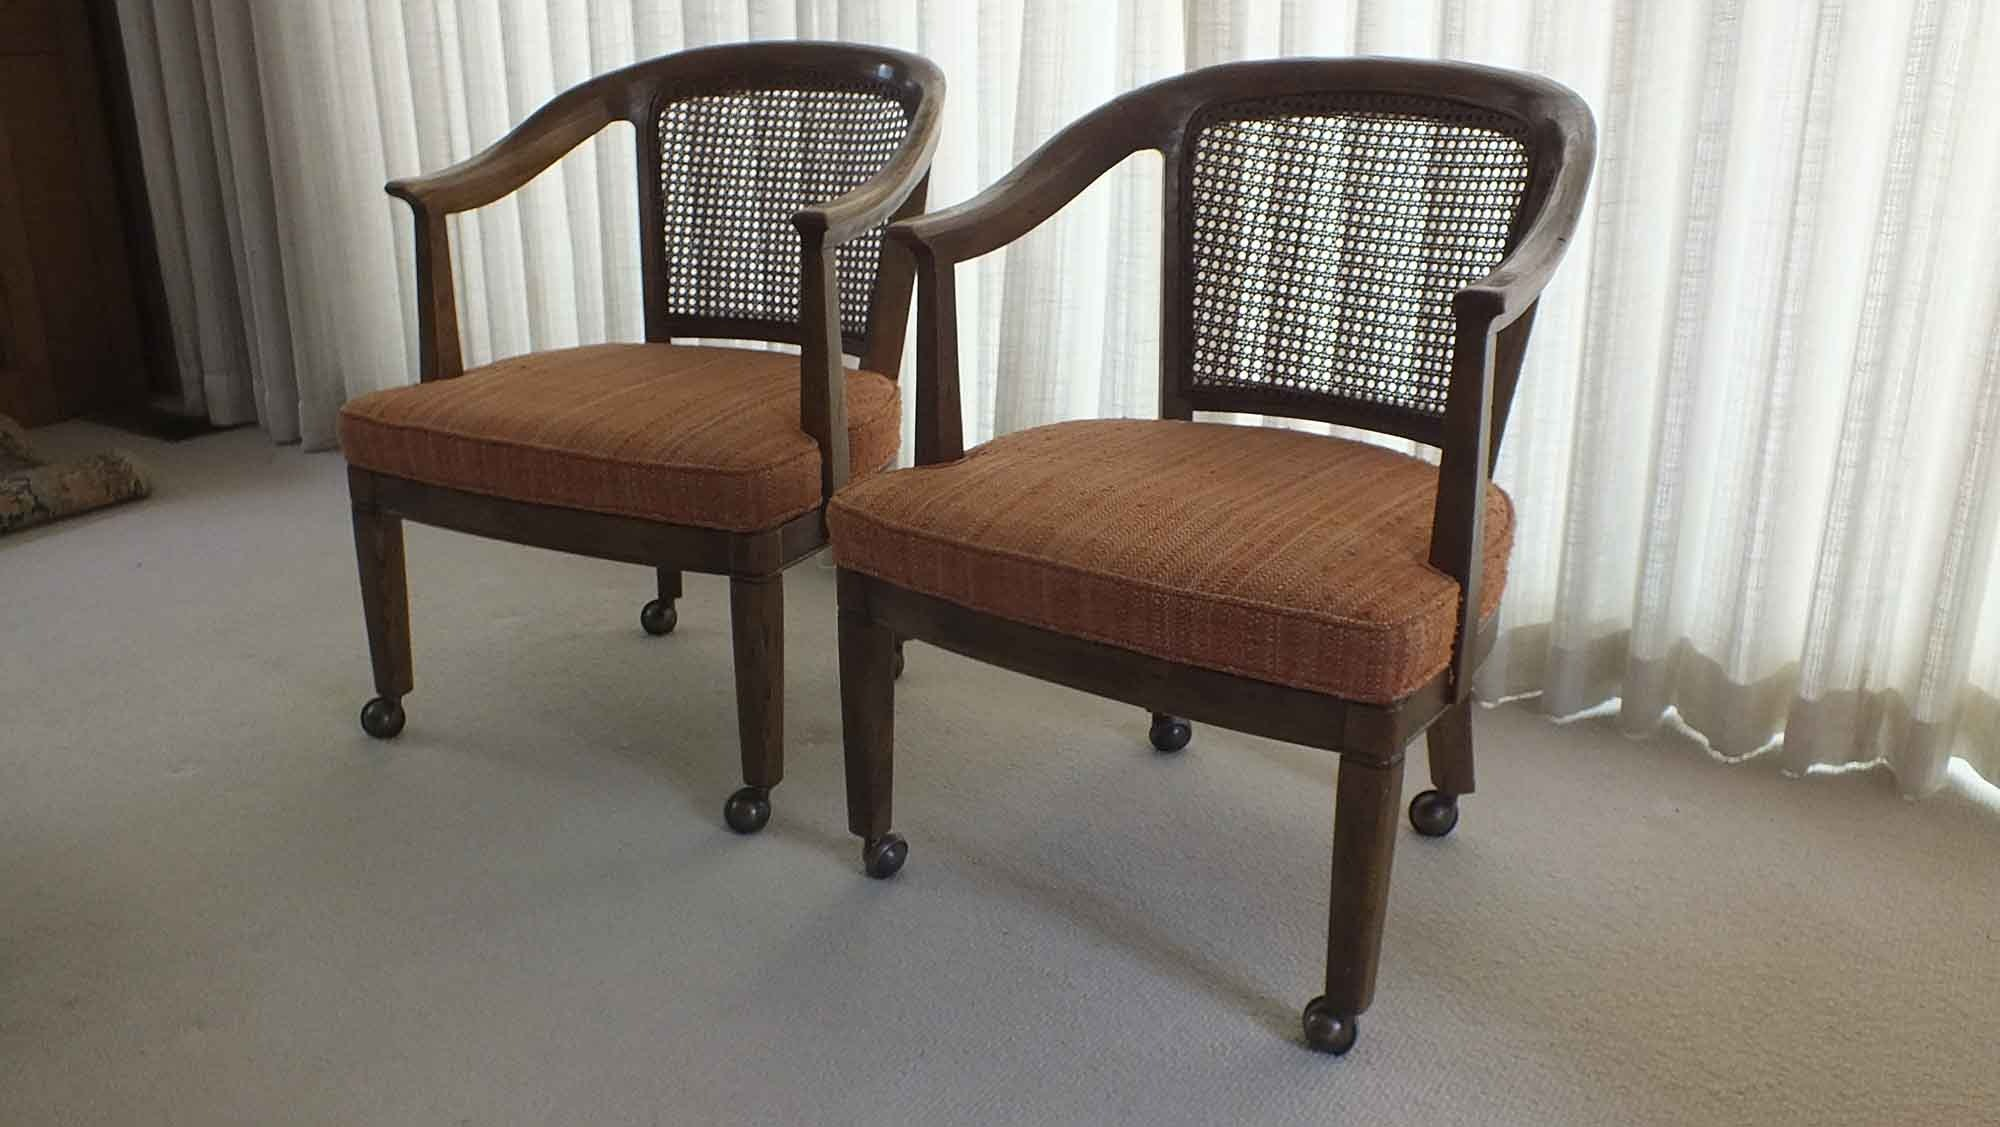 pair of henredon cane barrel chairs - Barrel Chairs